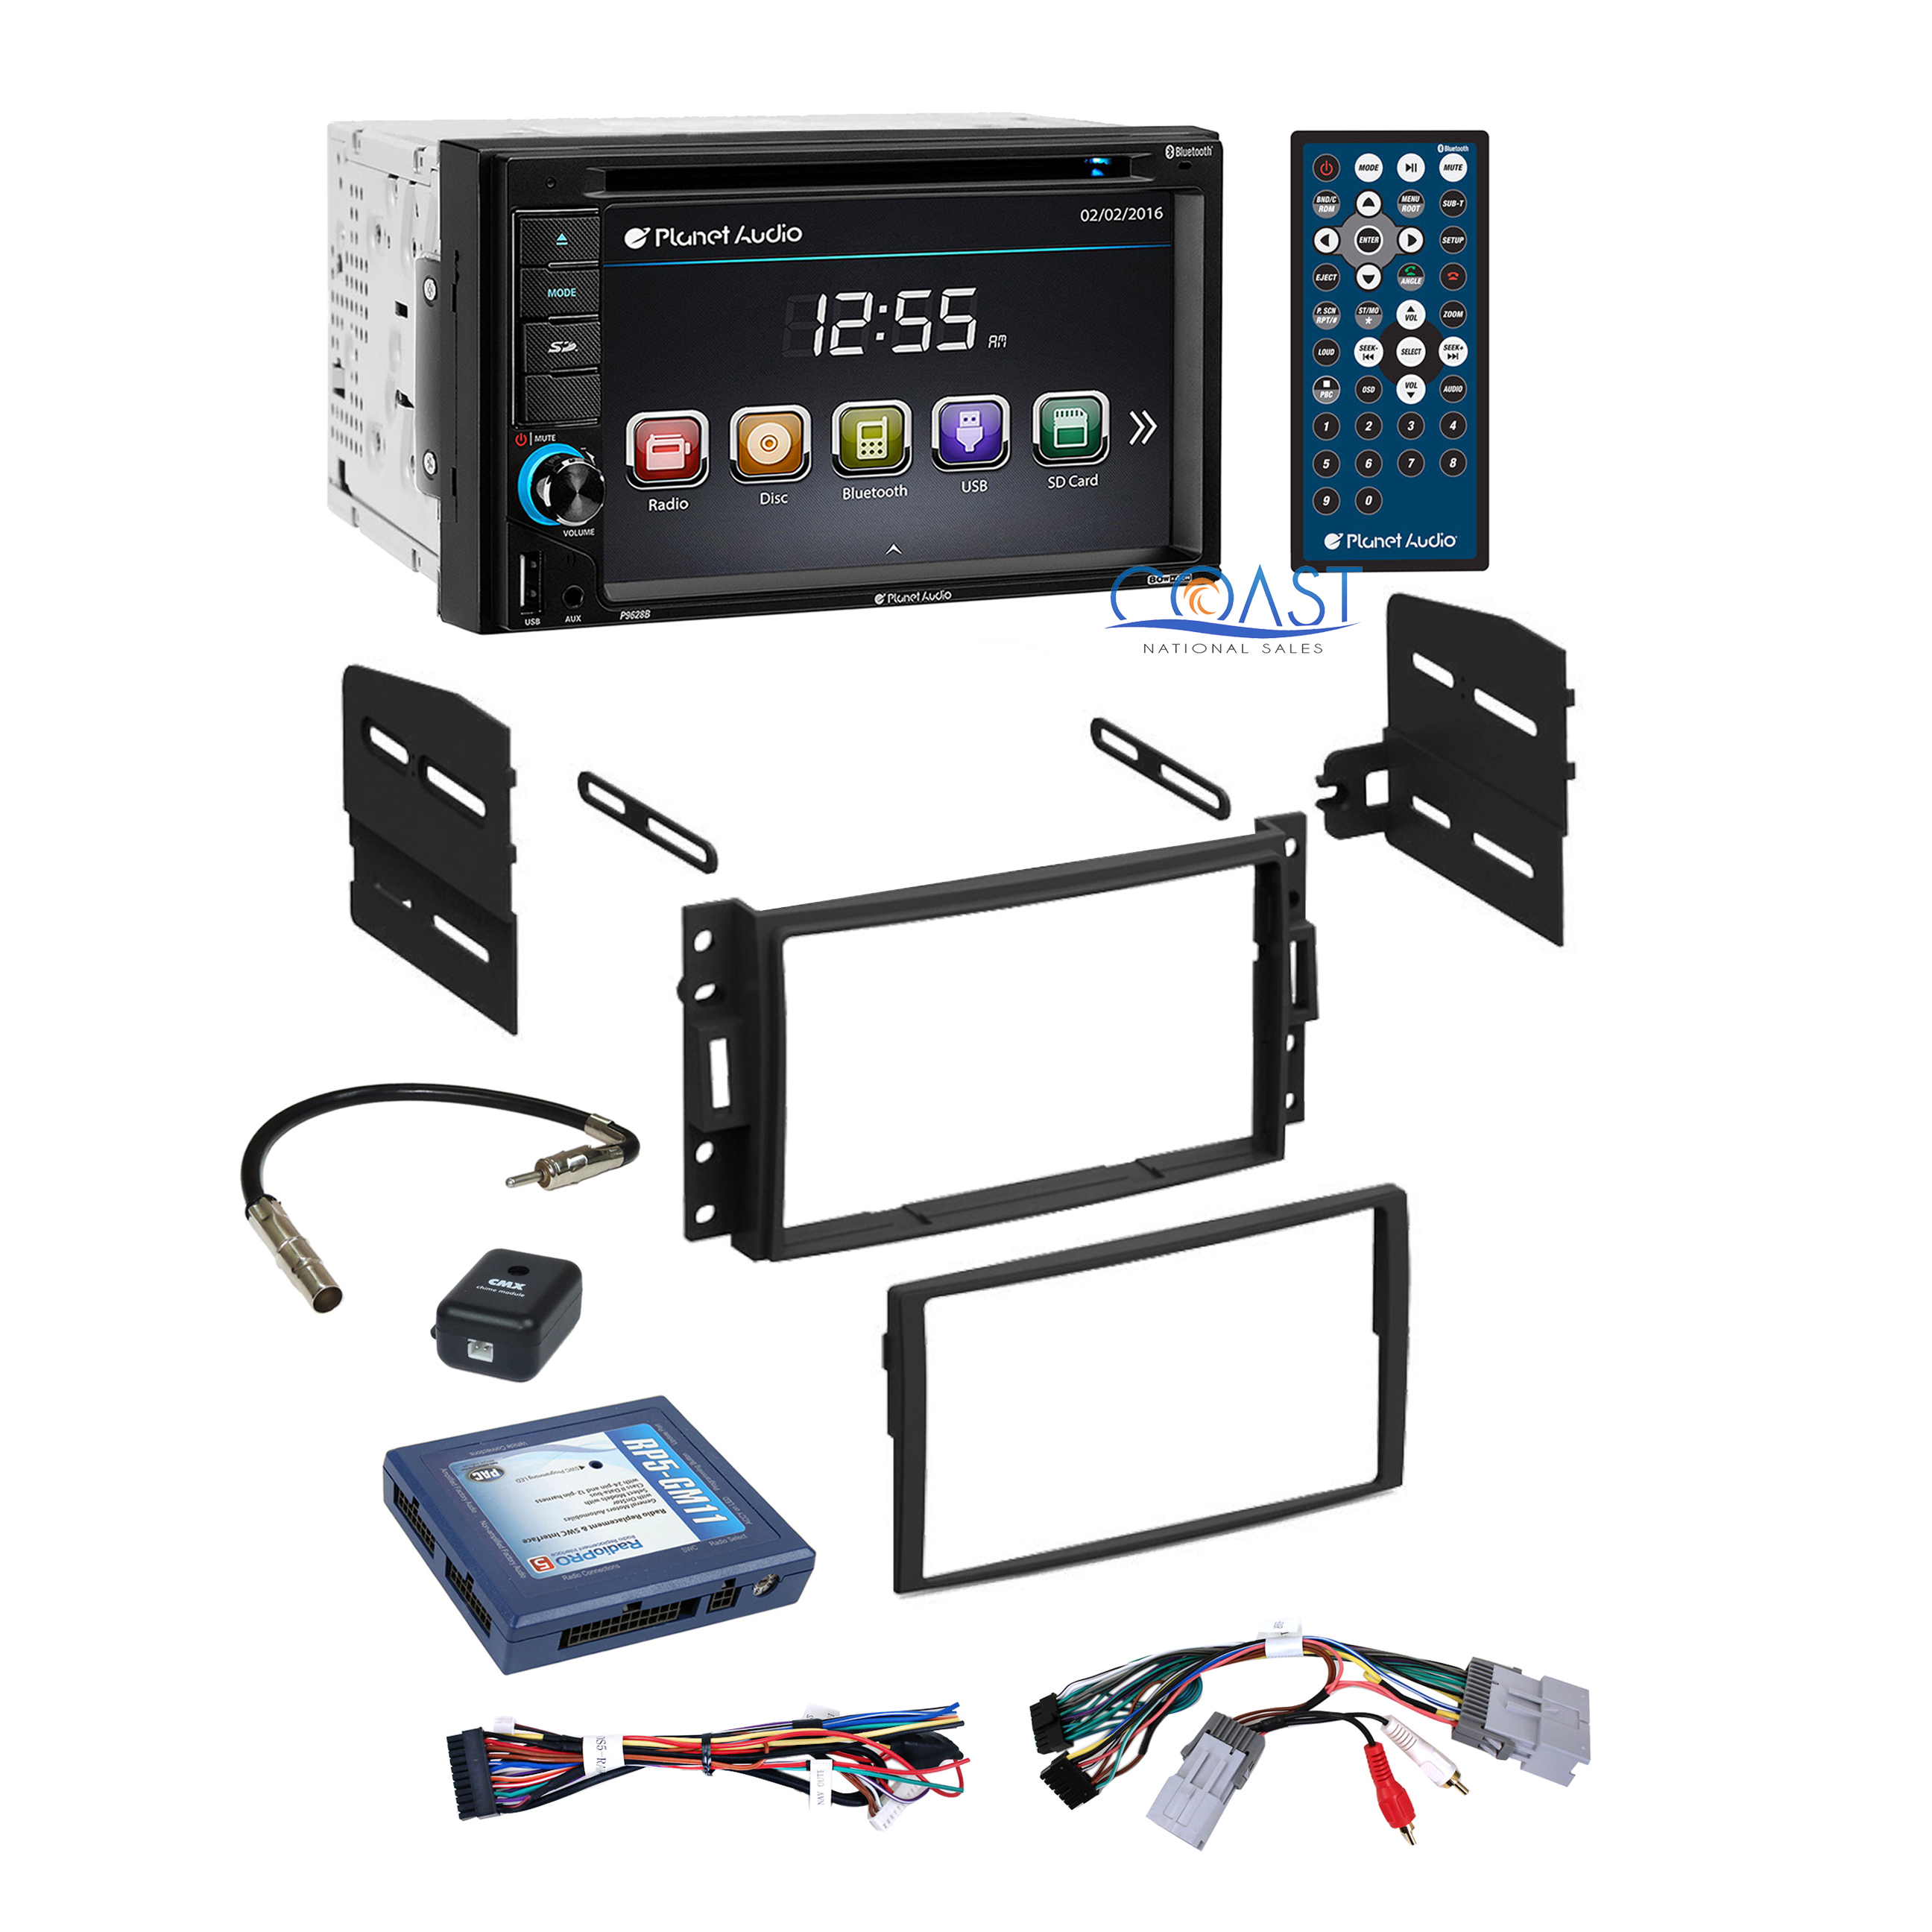 planet audio car stereo dash kit bose wire harness for chevrolet pontiac saturn ebay